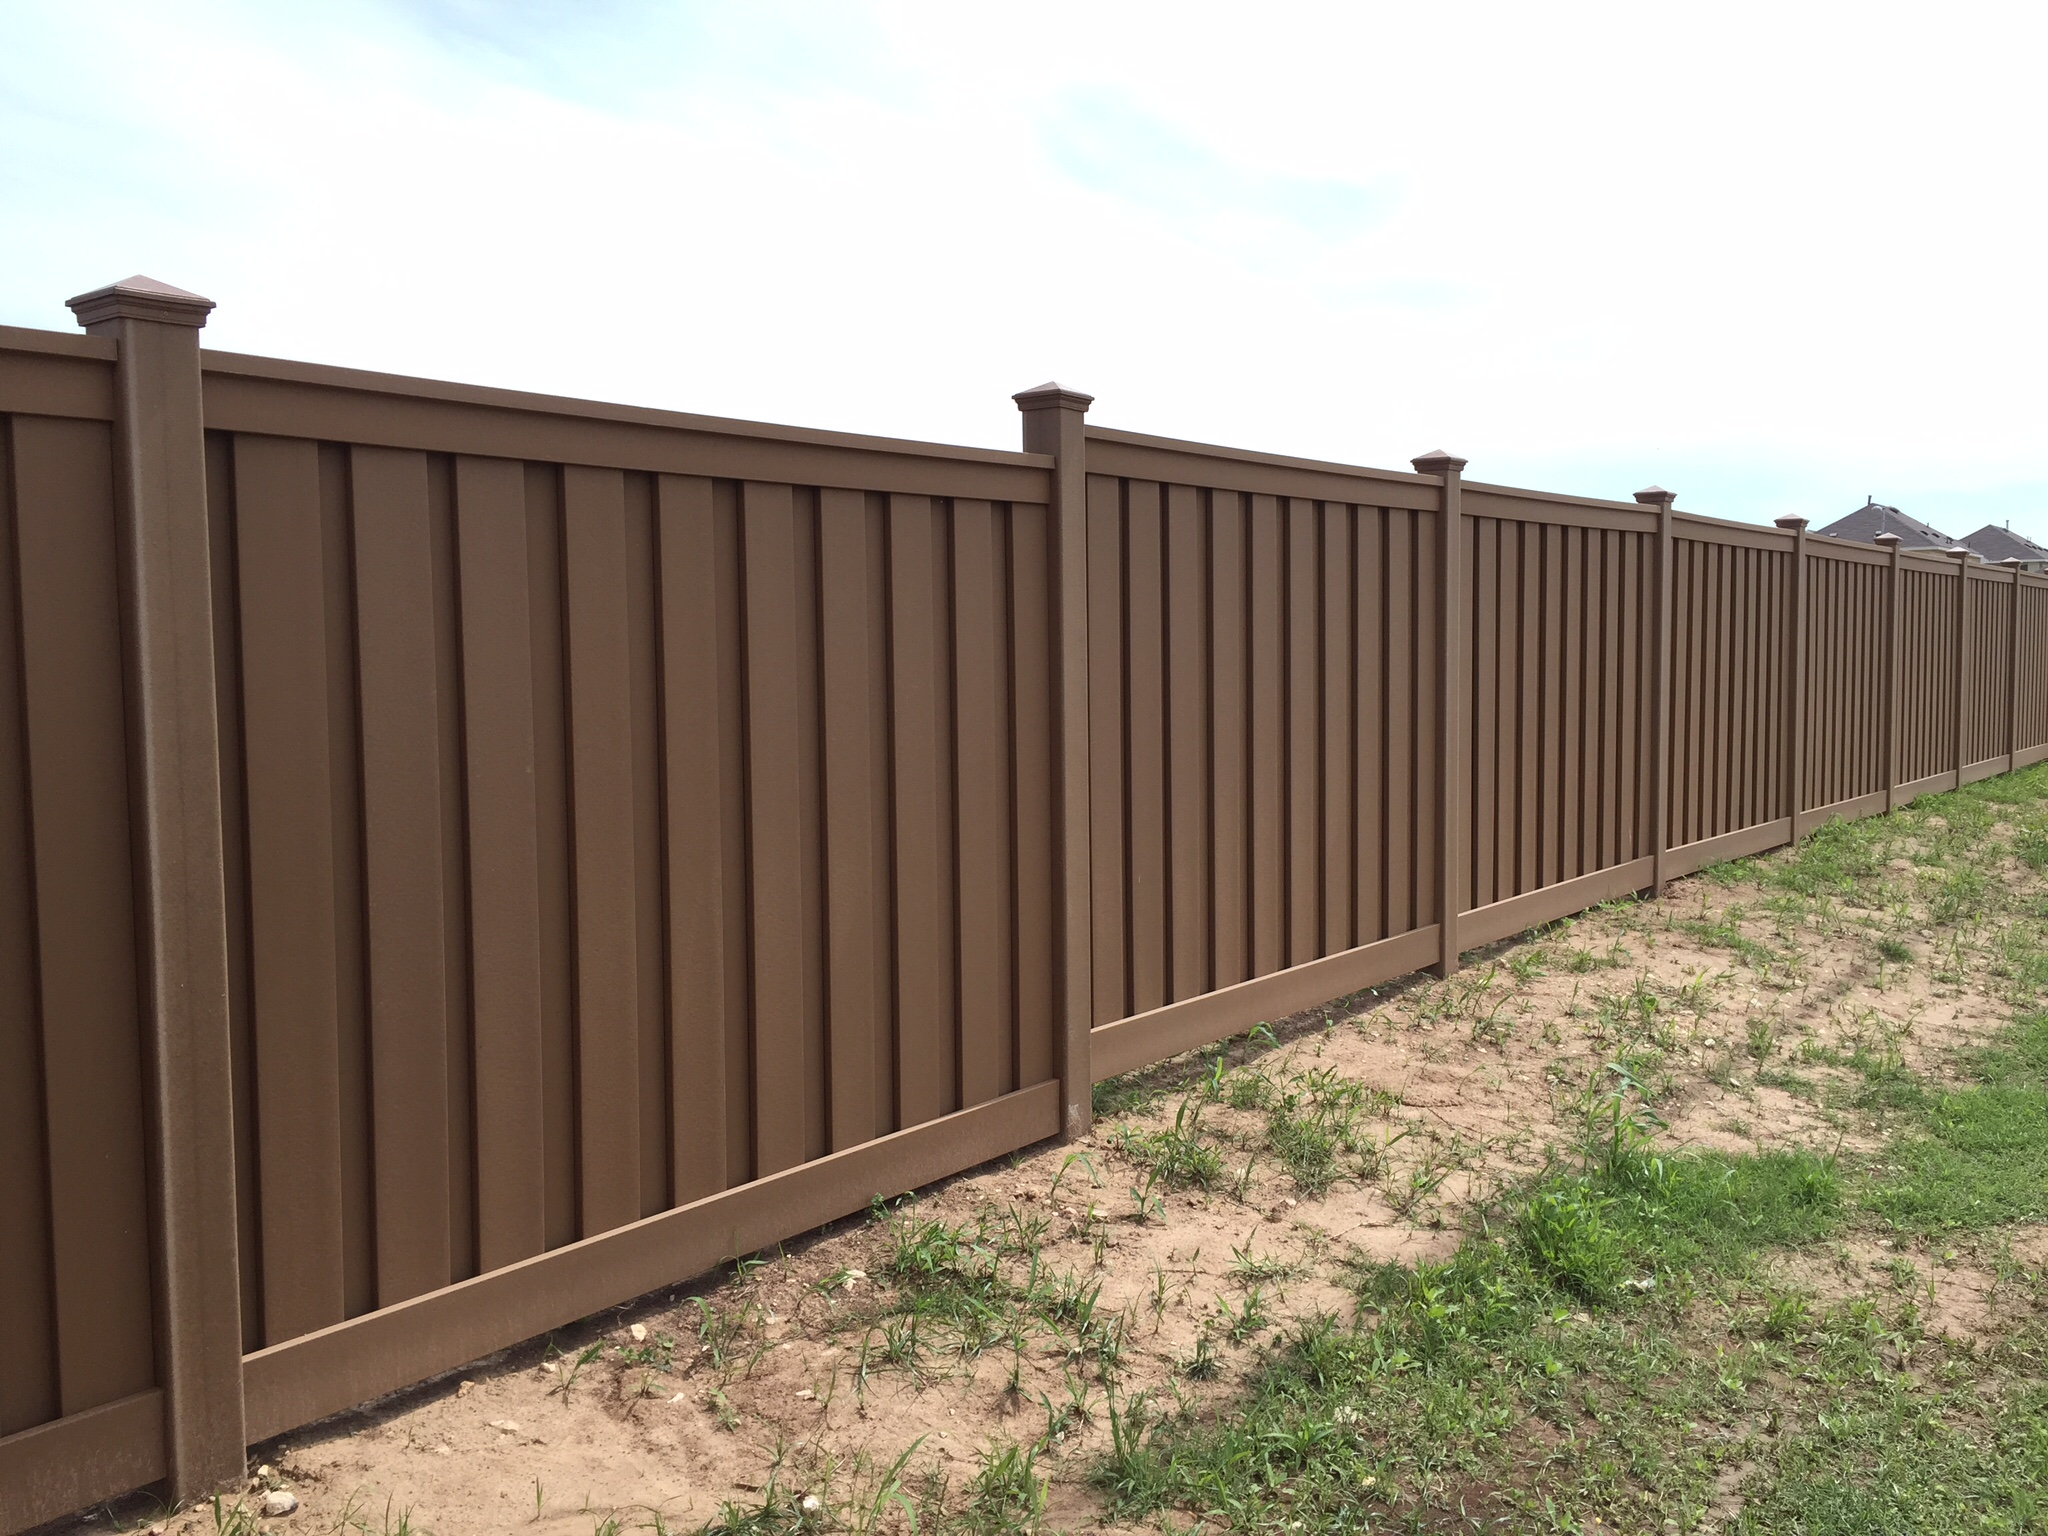 Edmundtrexfencing author at trex fencing the composite fence around utility pole trex fencing installed in austins colony austin texas baanklon Gallery